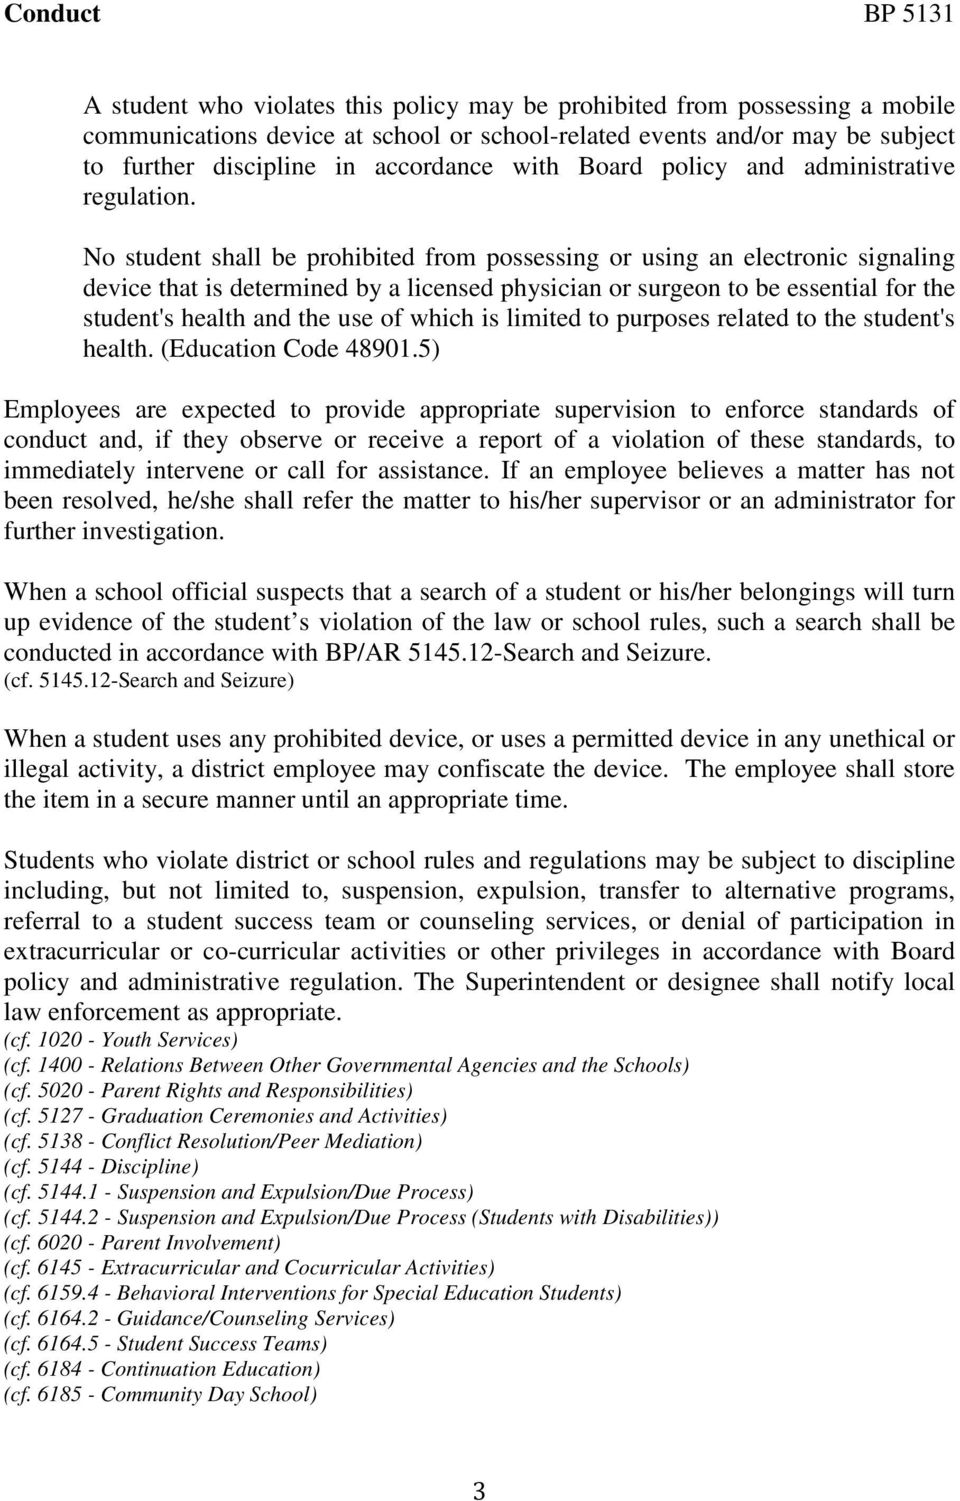 No student shall be prohibited from possessing or using an electronic signaling device that is determined by a licensed physician or surgeon to be essential for the student's health and the use of